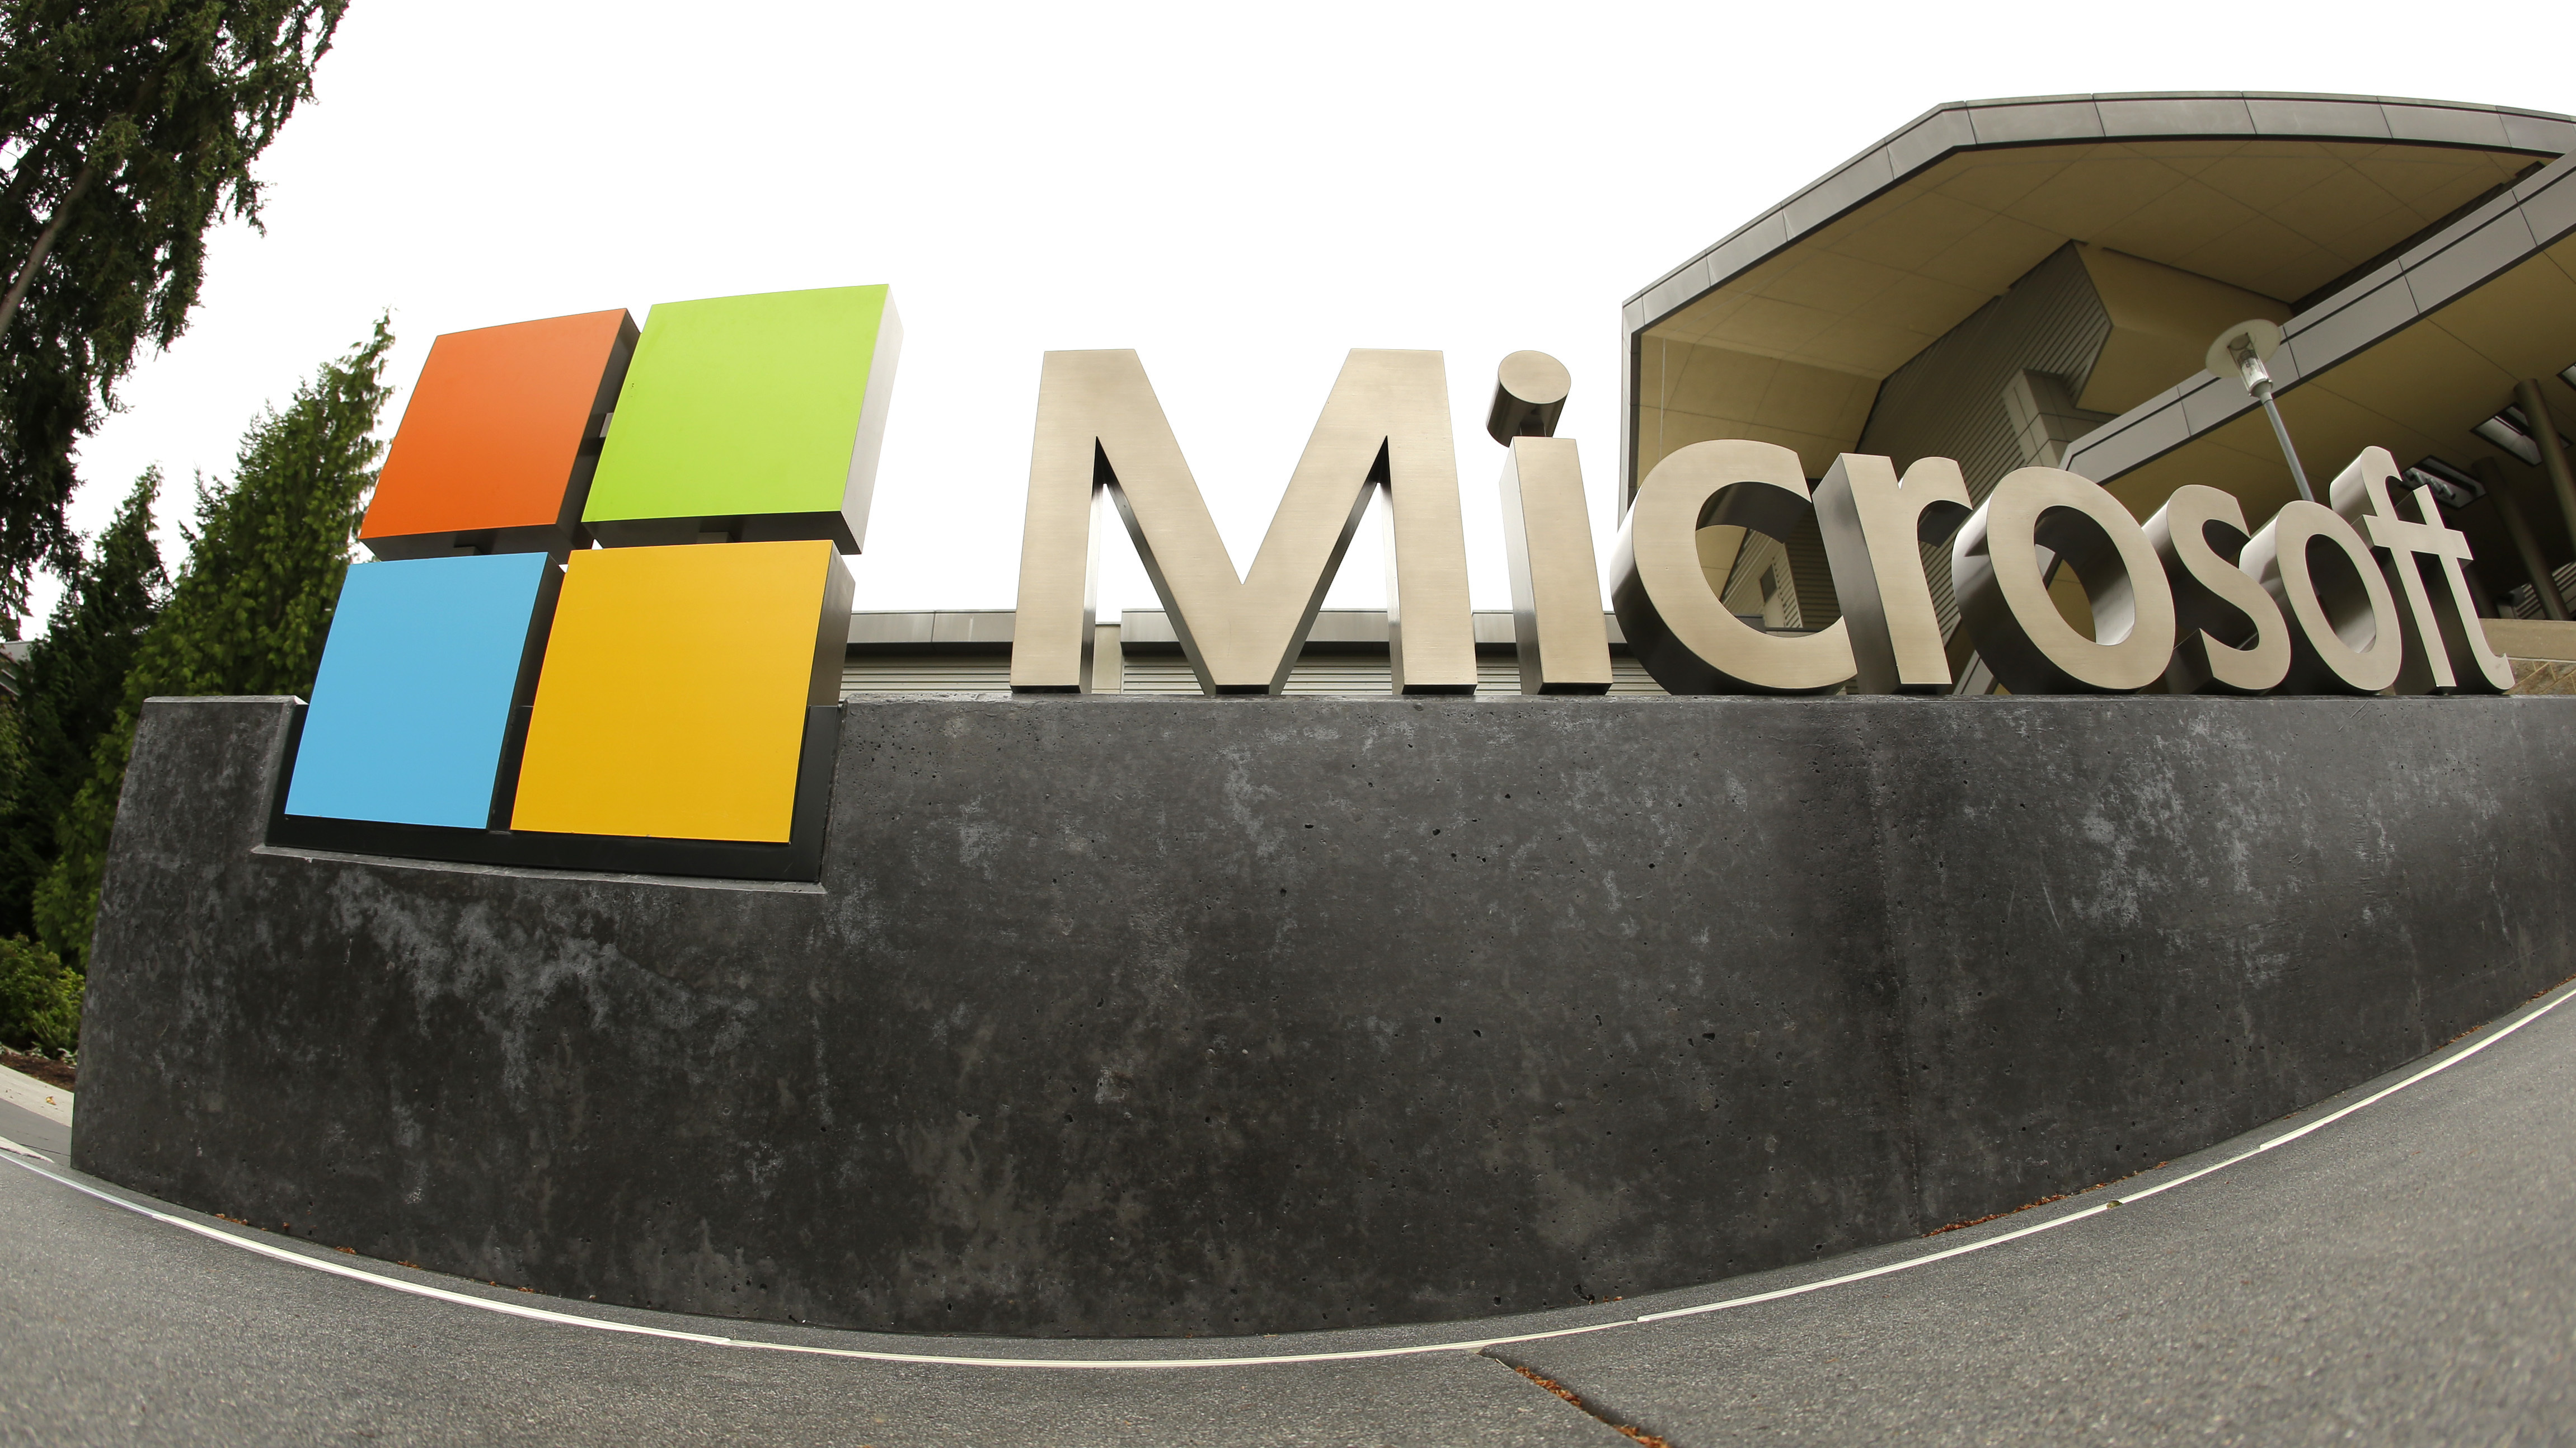 Building 92 microsoft store - Scam Reminder Microsoft Will Never Call You Asking For Money Technology Dallas News